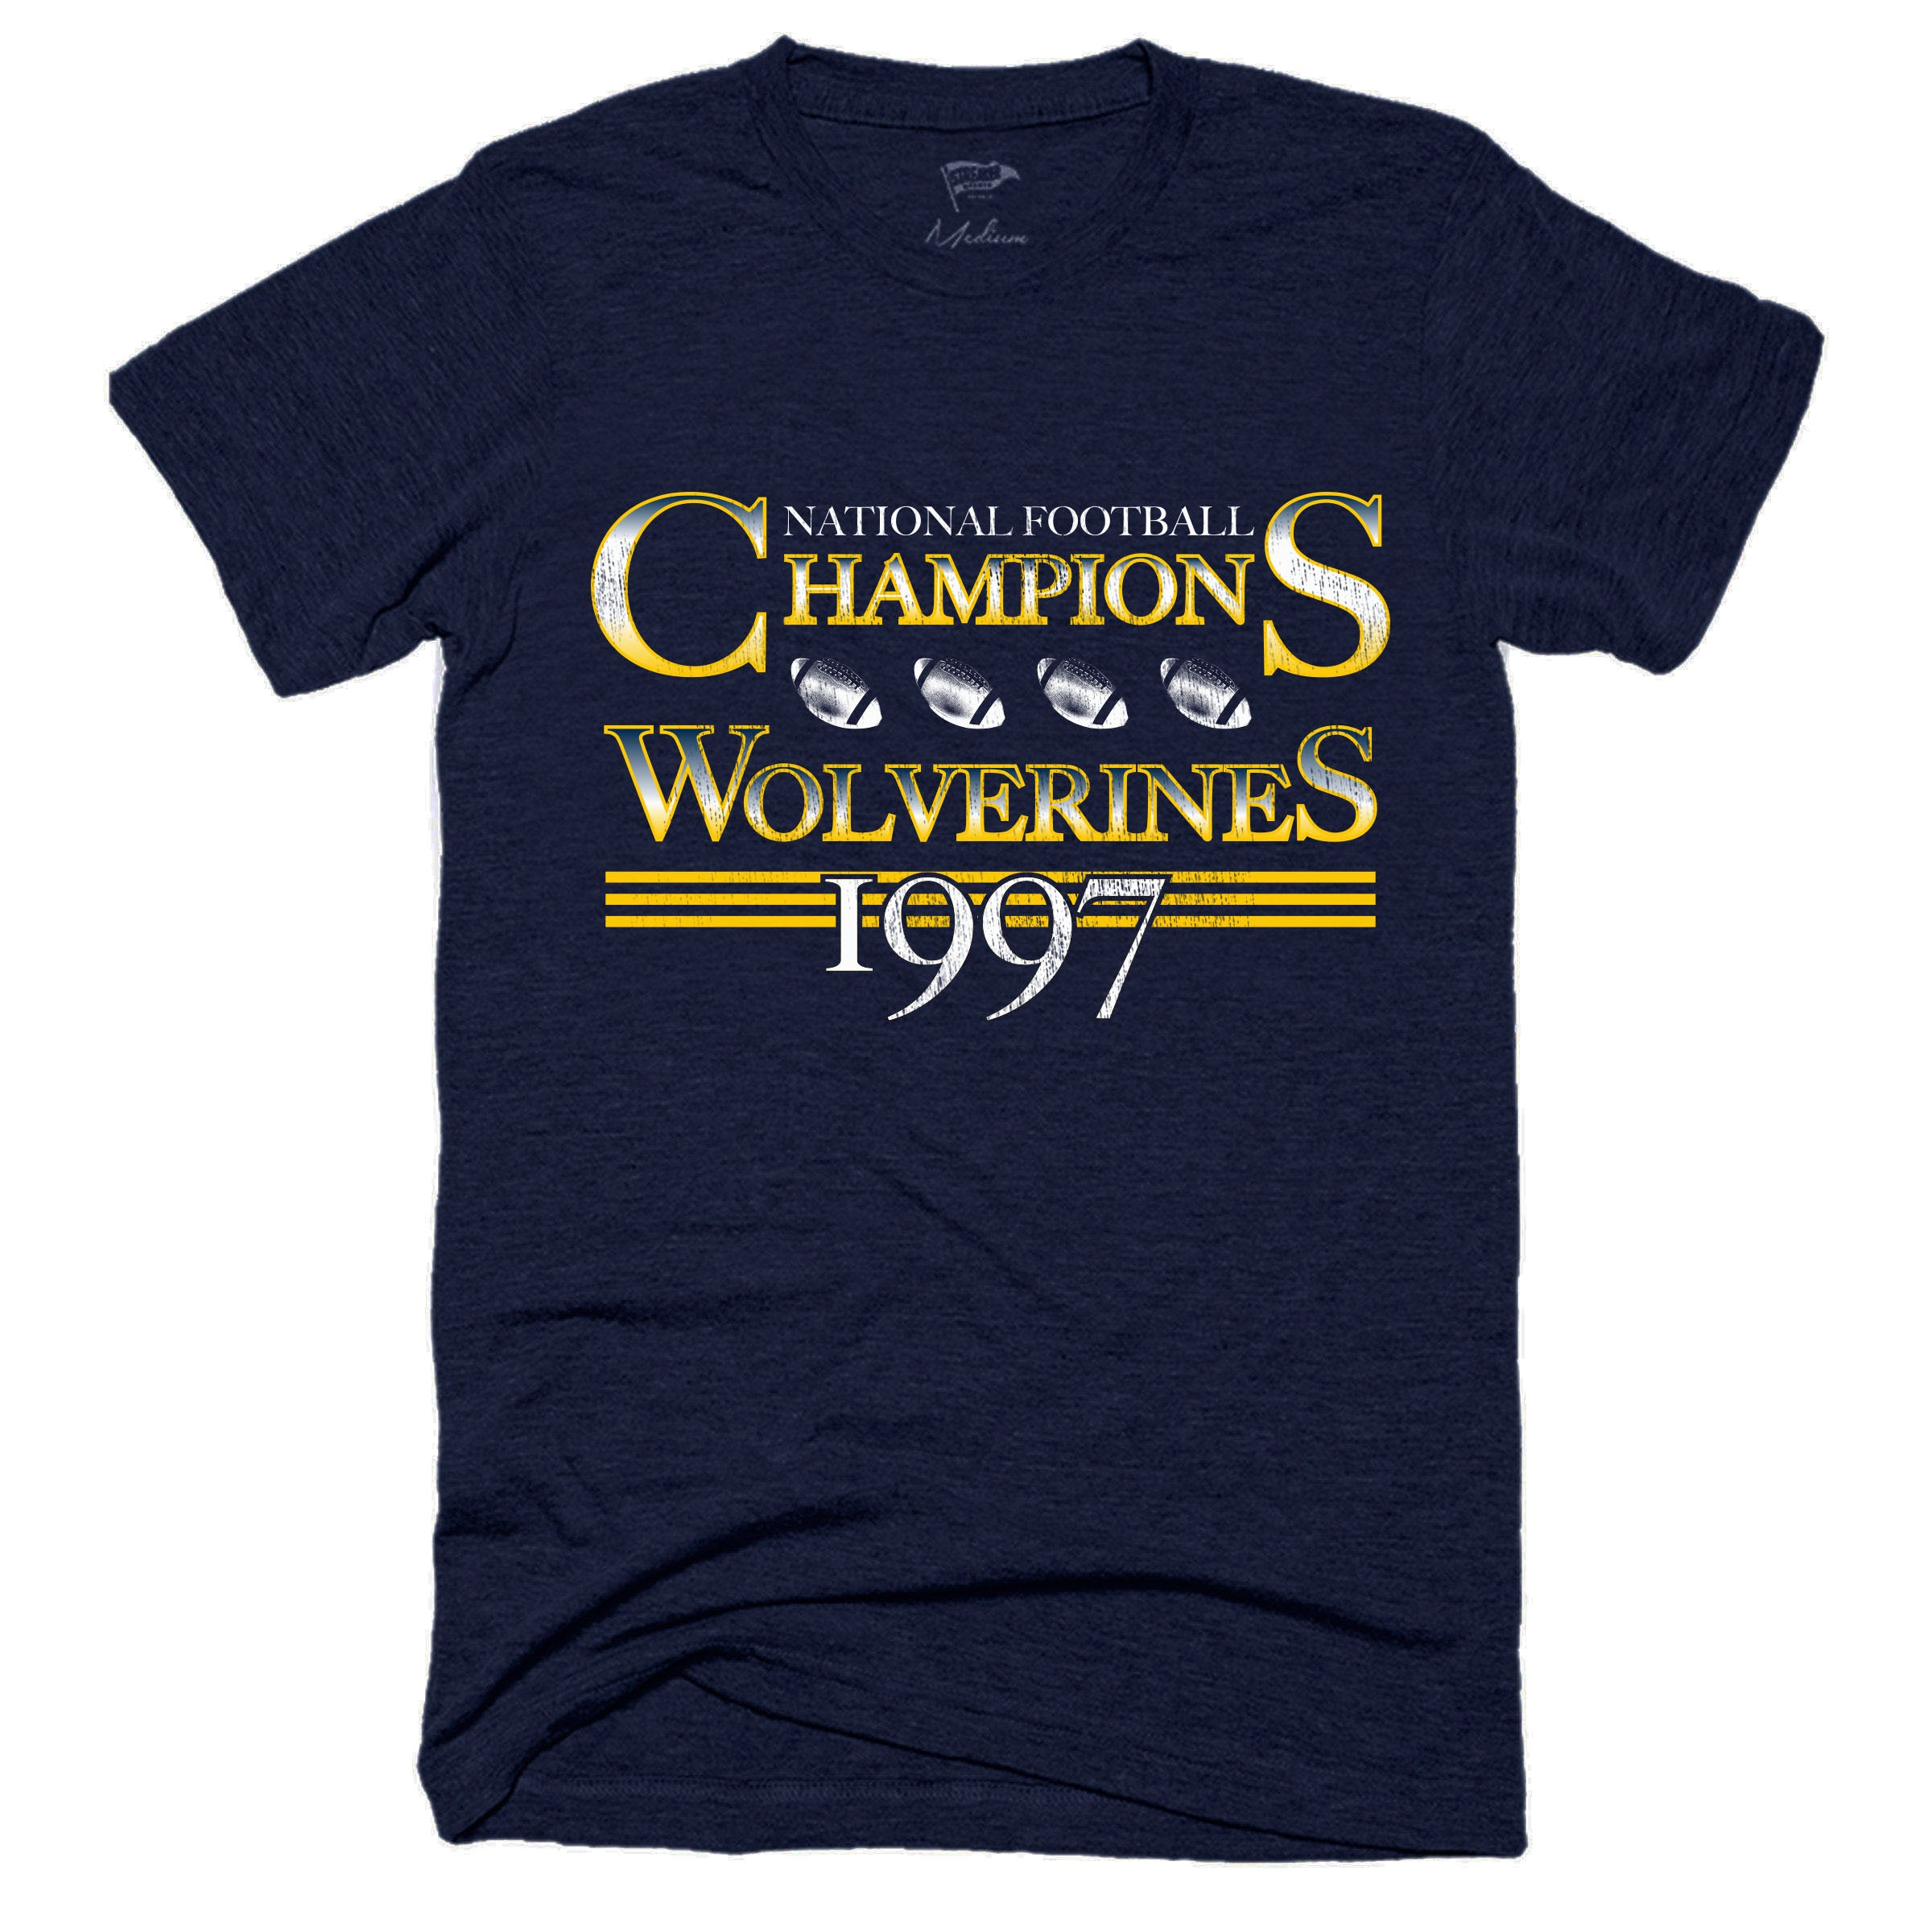 1997 Wolverines National Champs Football Tee